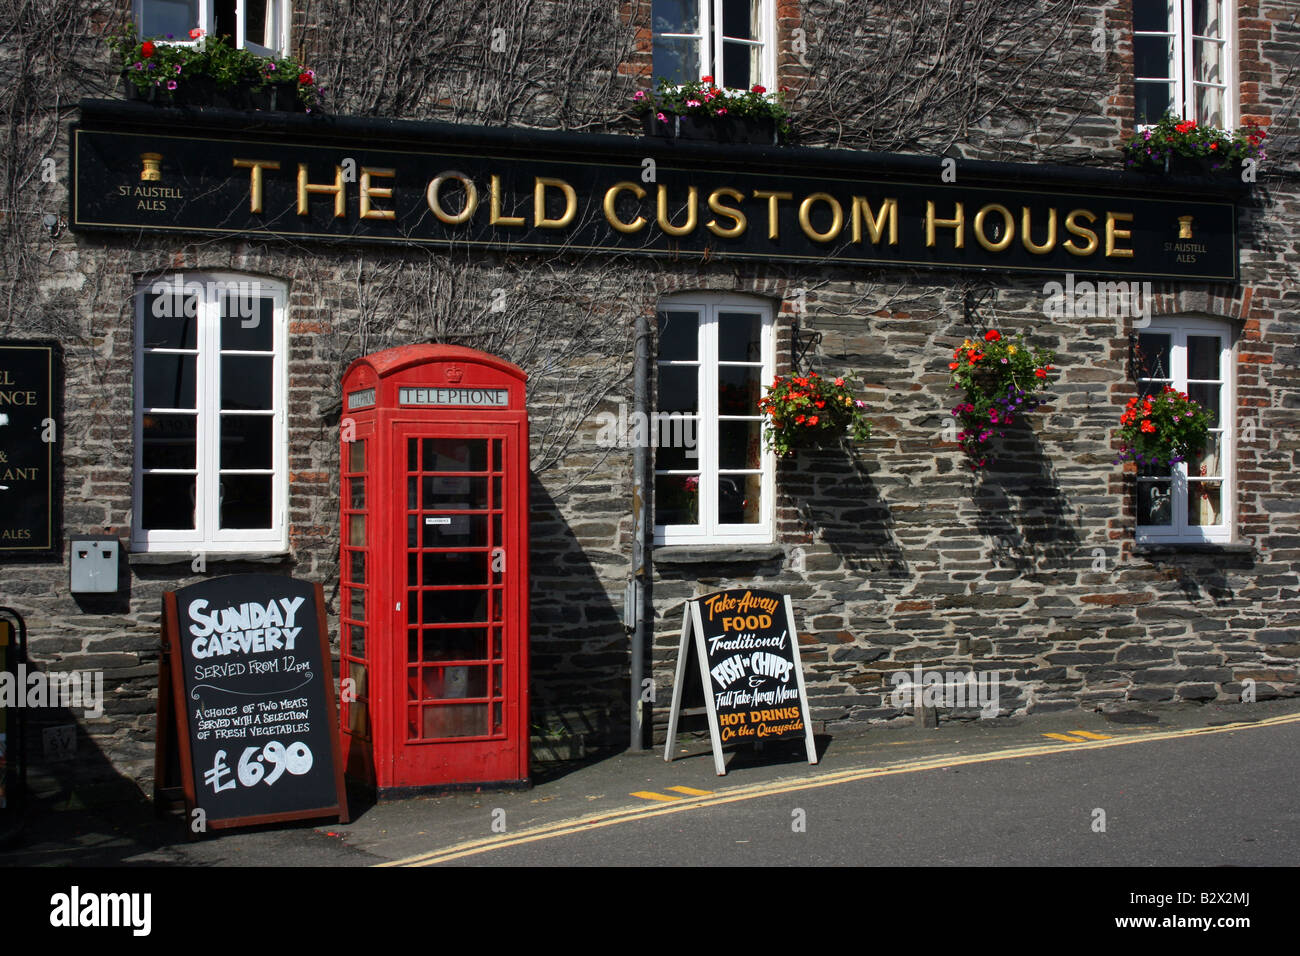 The Old Custom House in Padstow, Cornwall, England Stock Photo